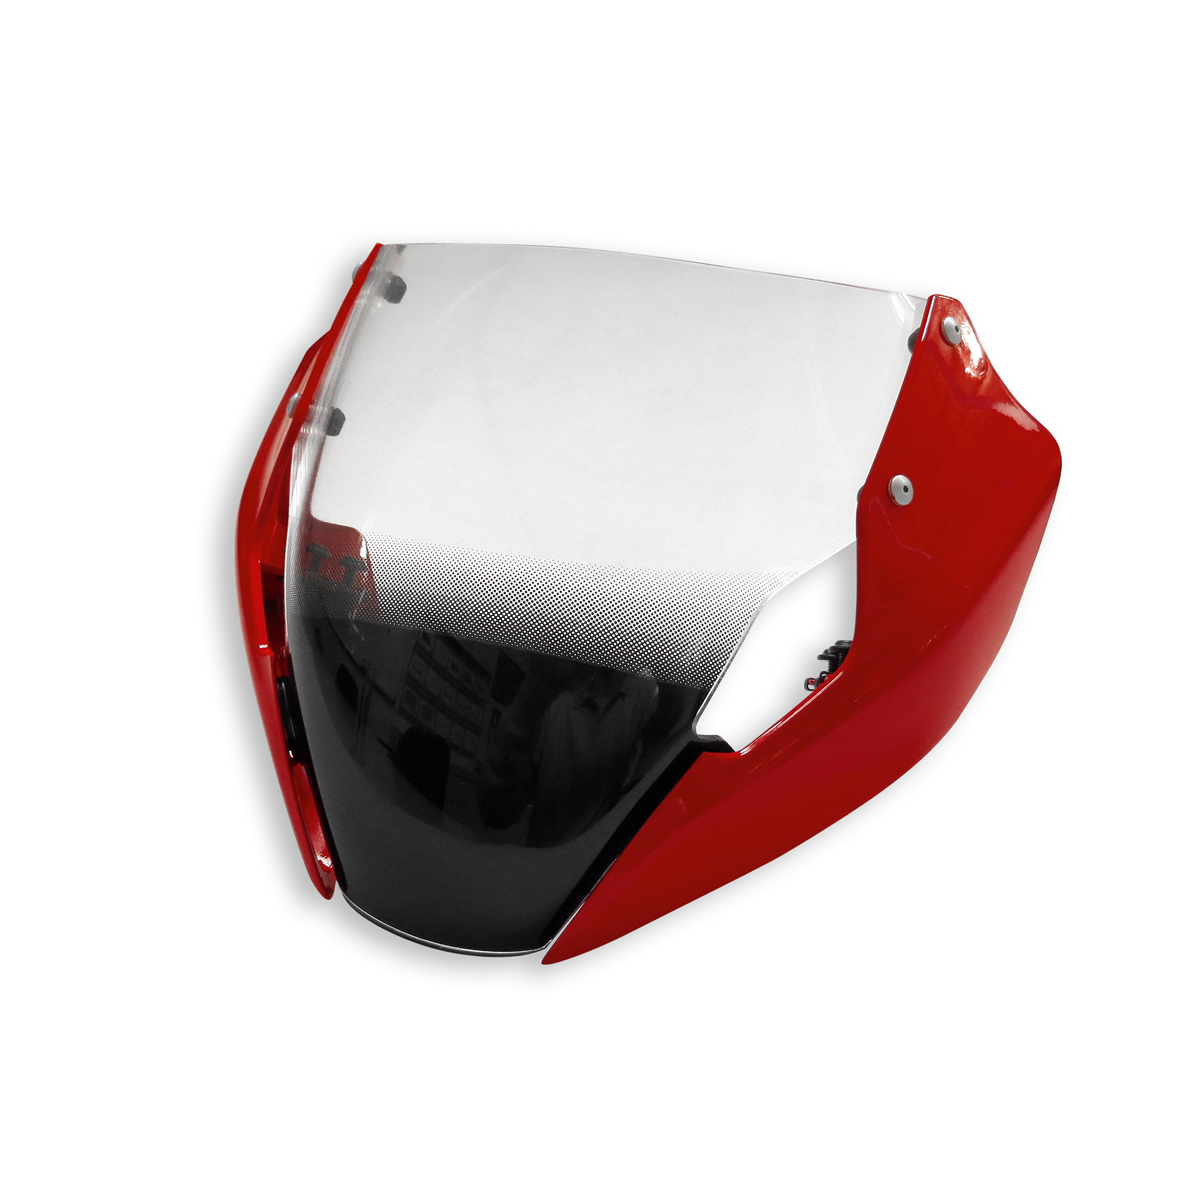 Sport Headlight Fairing.